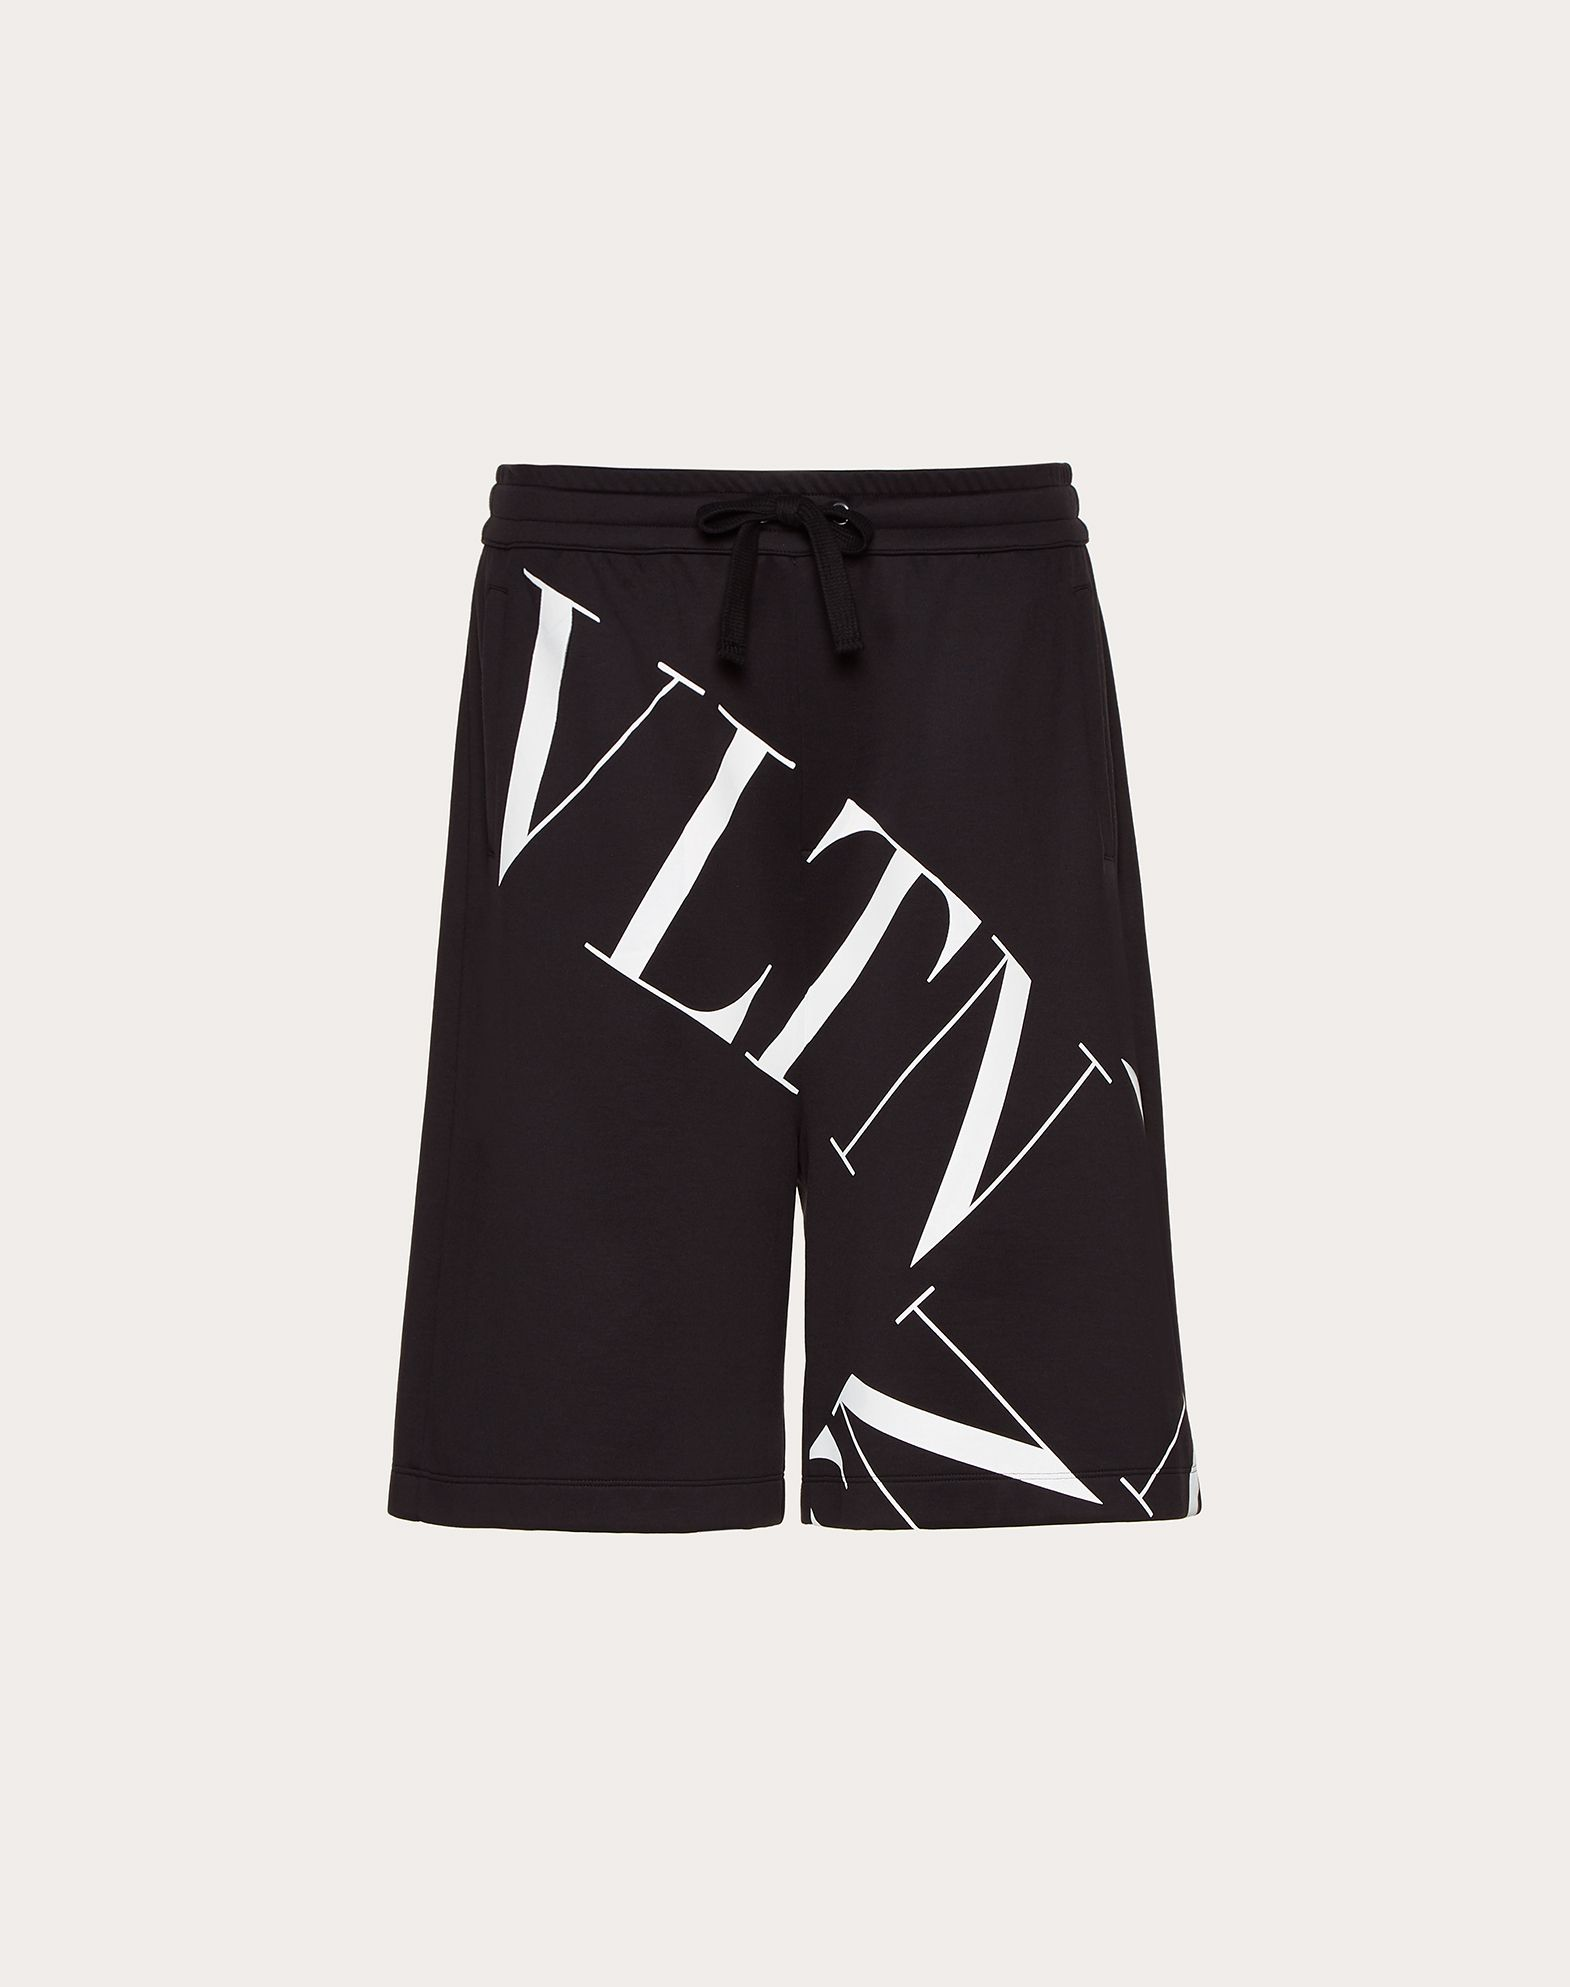 JERSEY BERMUDA SHORTS WITH VLTN MACROGRID